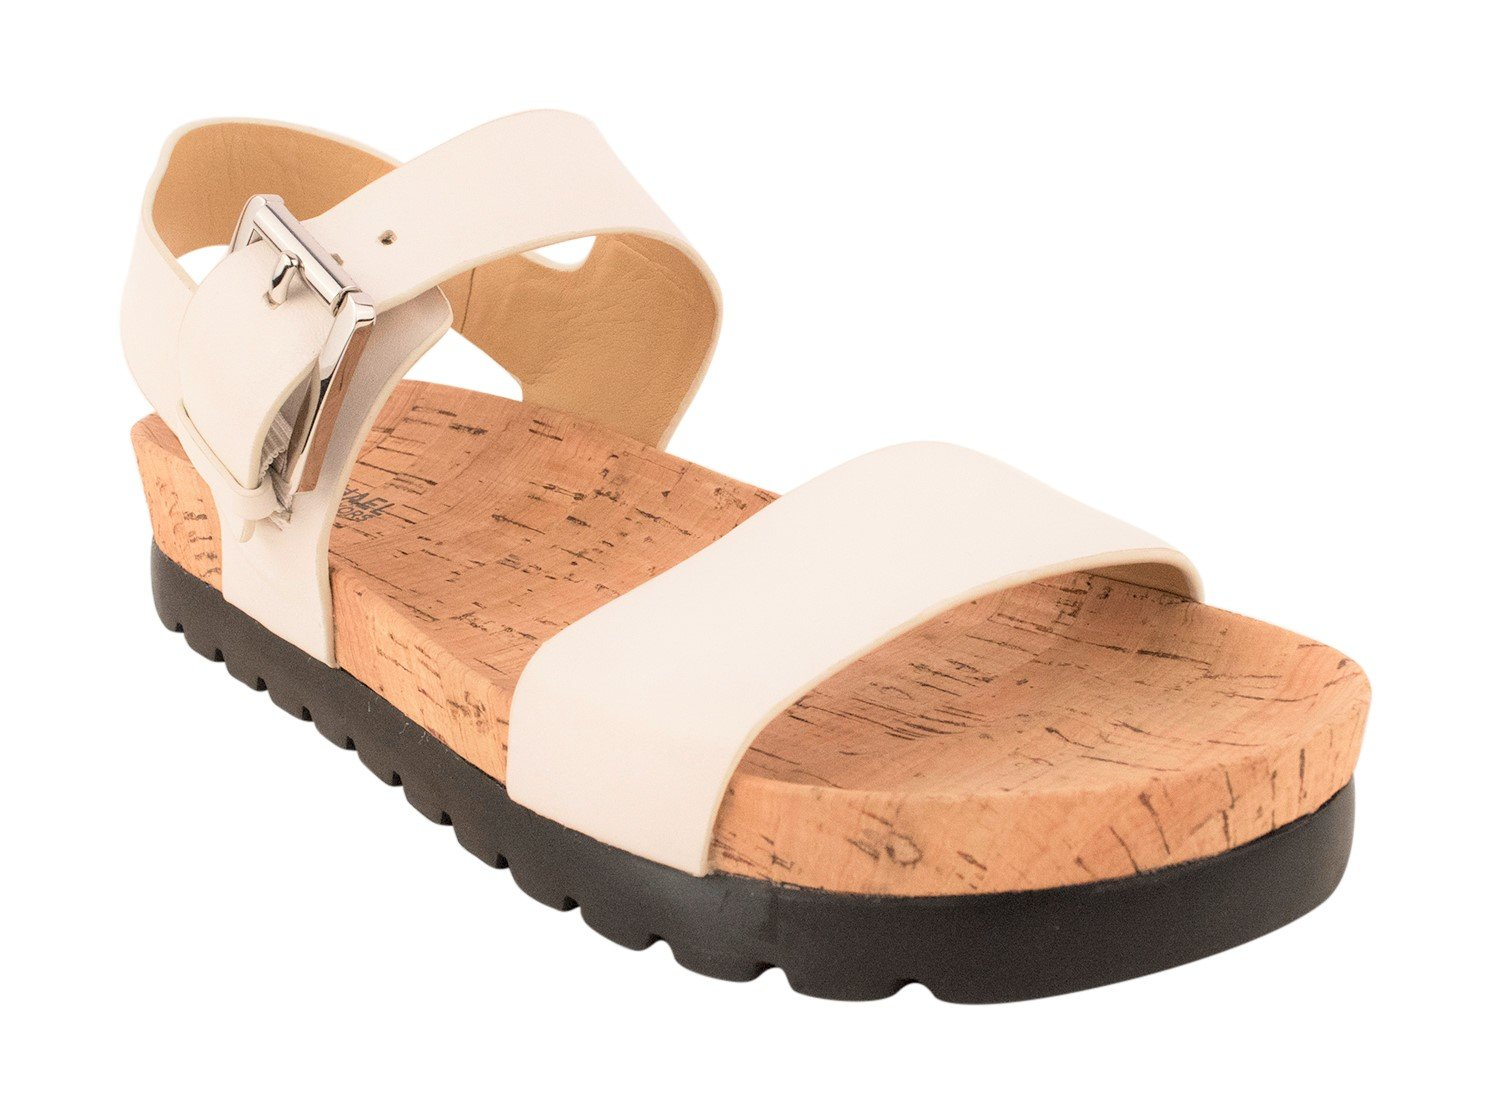 Michael Kors Judie Sandal Optic White Women's Leather/Cork Shoe by Michael Kors